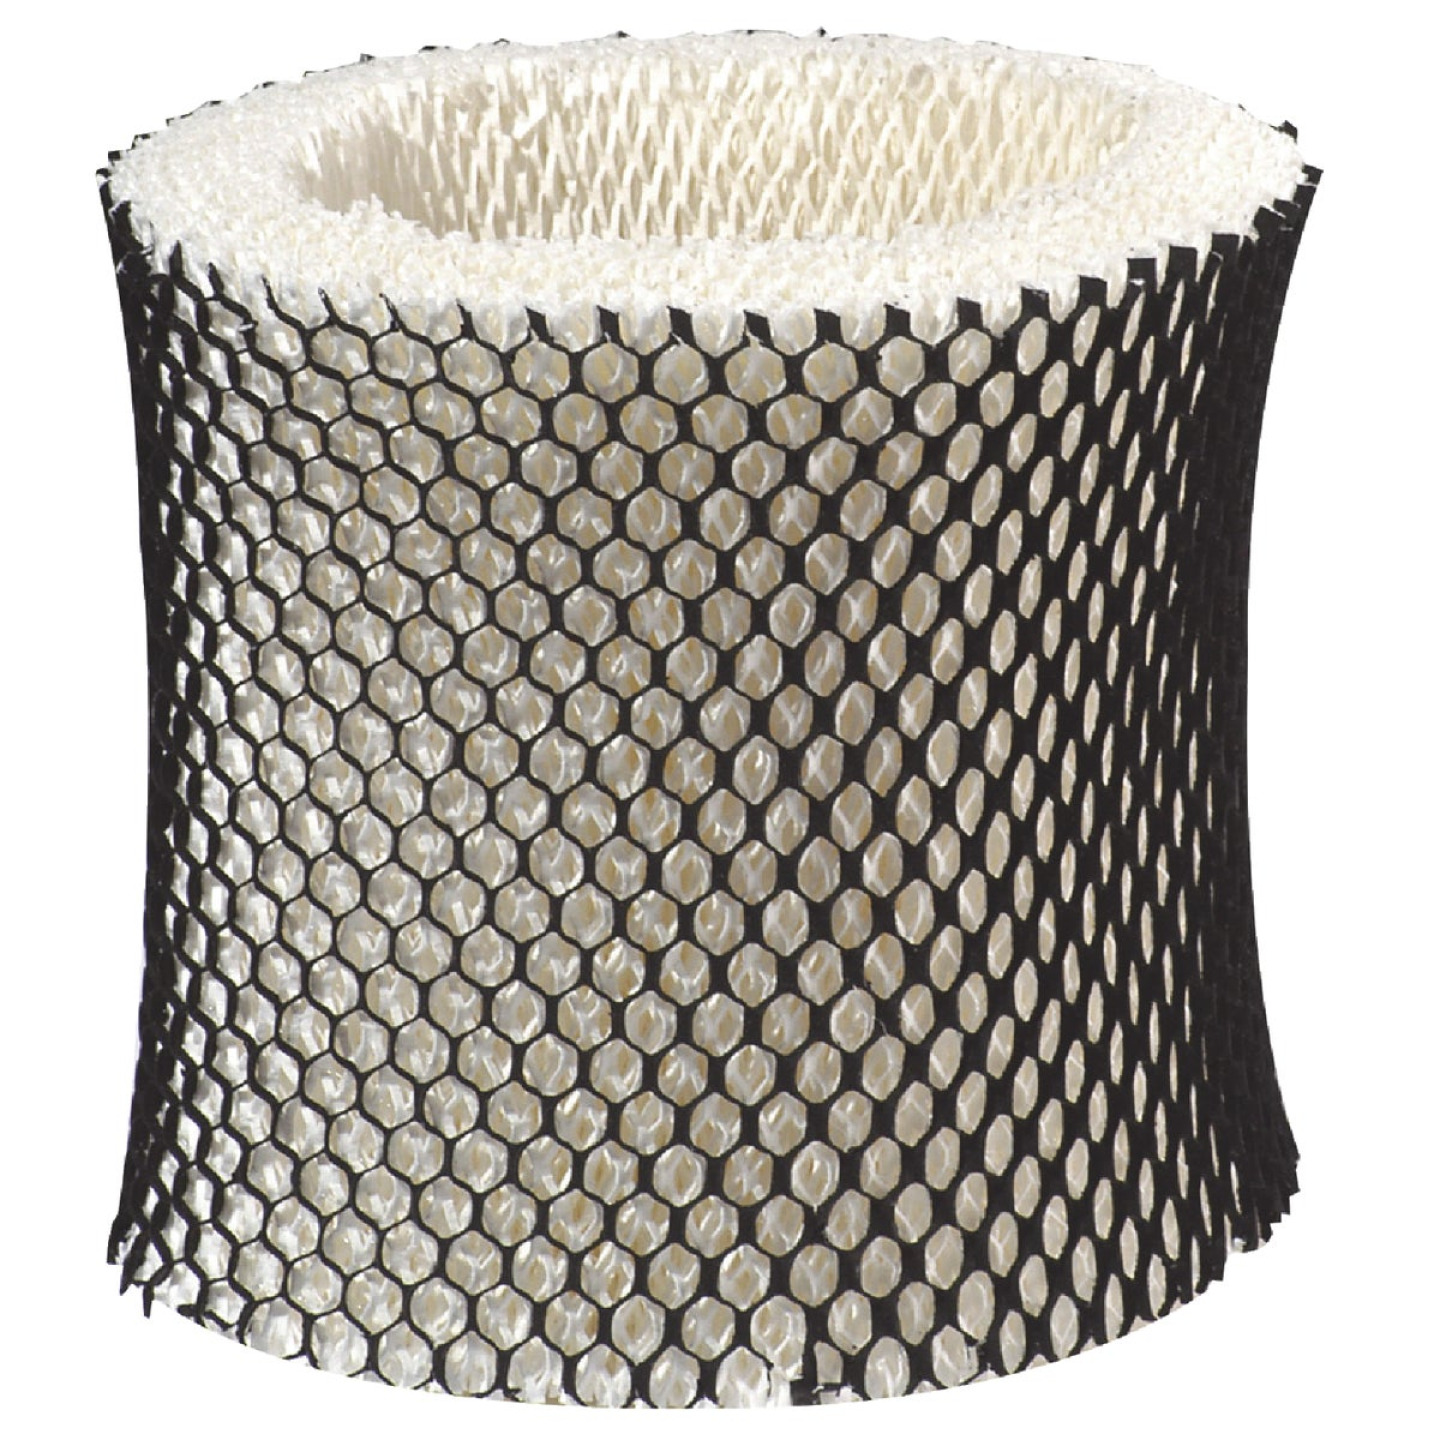 Holmes Type B Humidifier Wick Filter Image 1